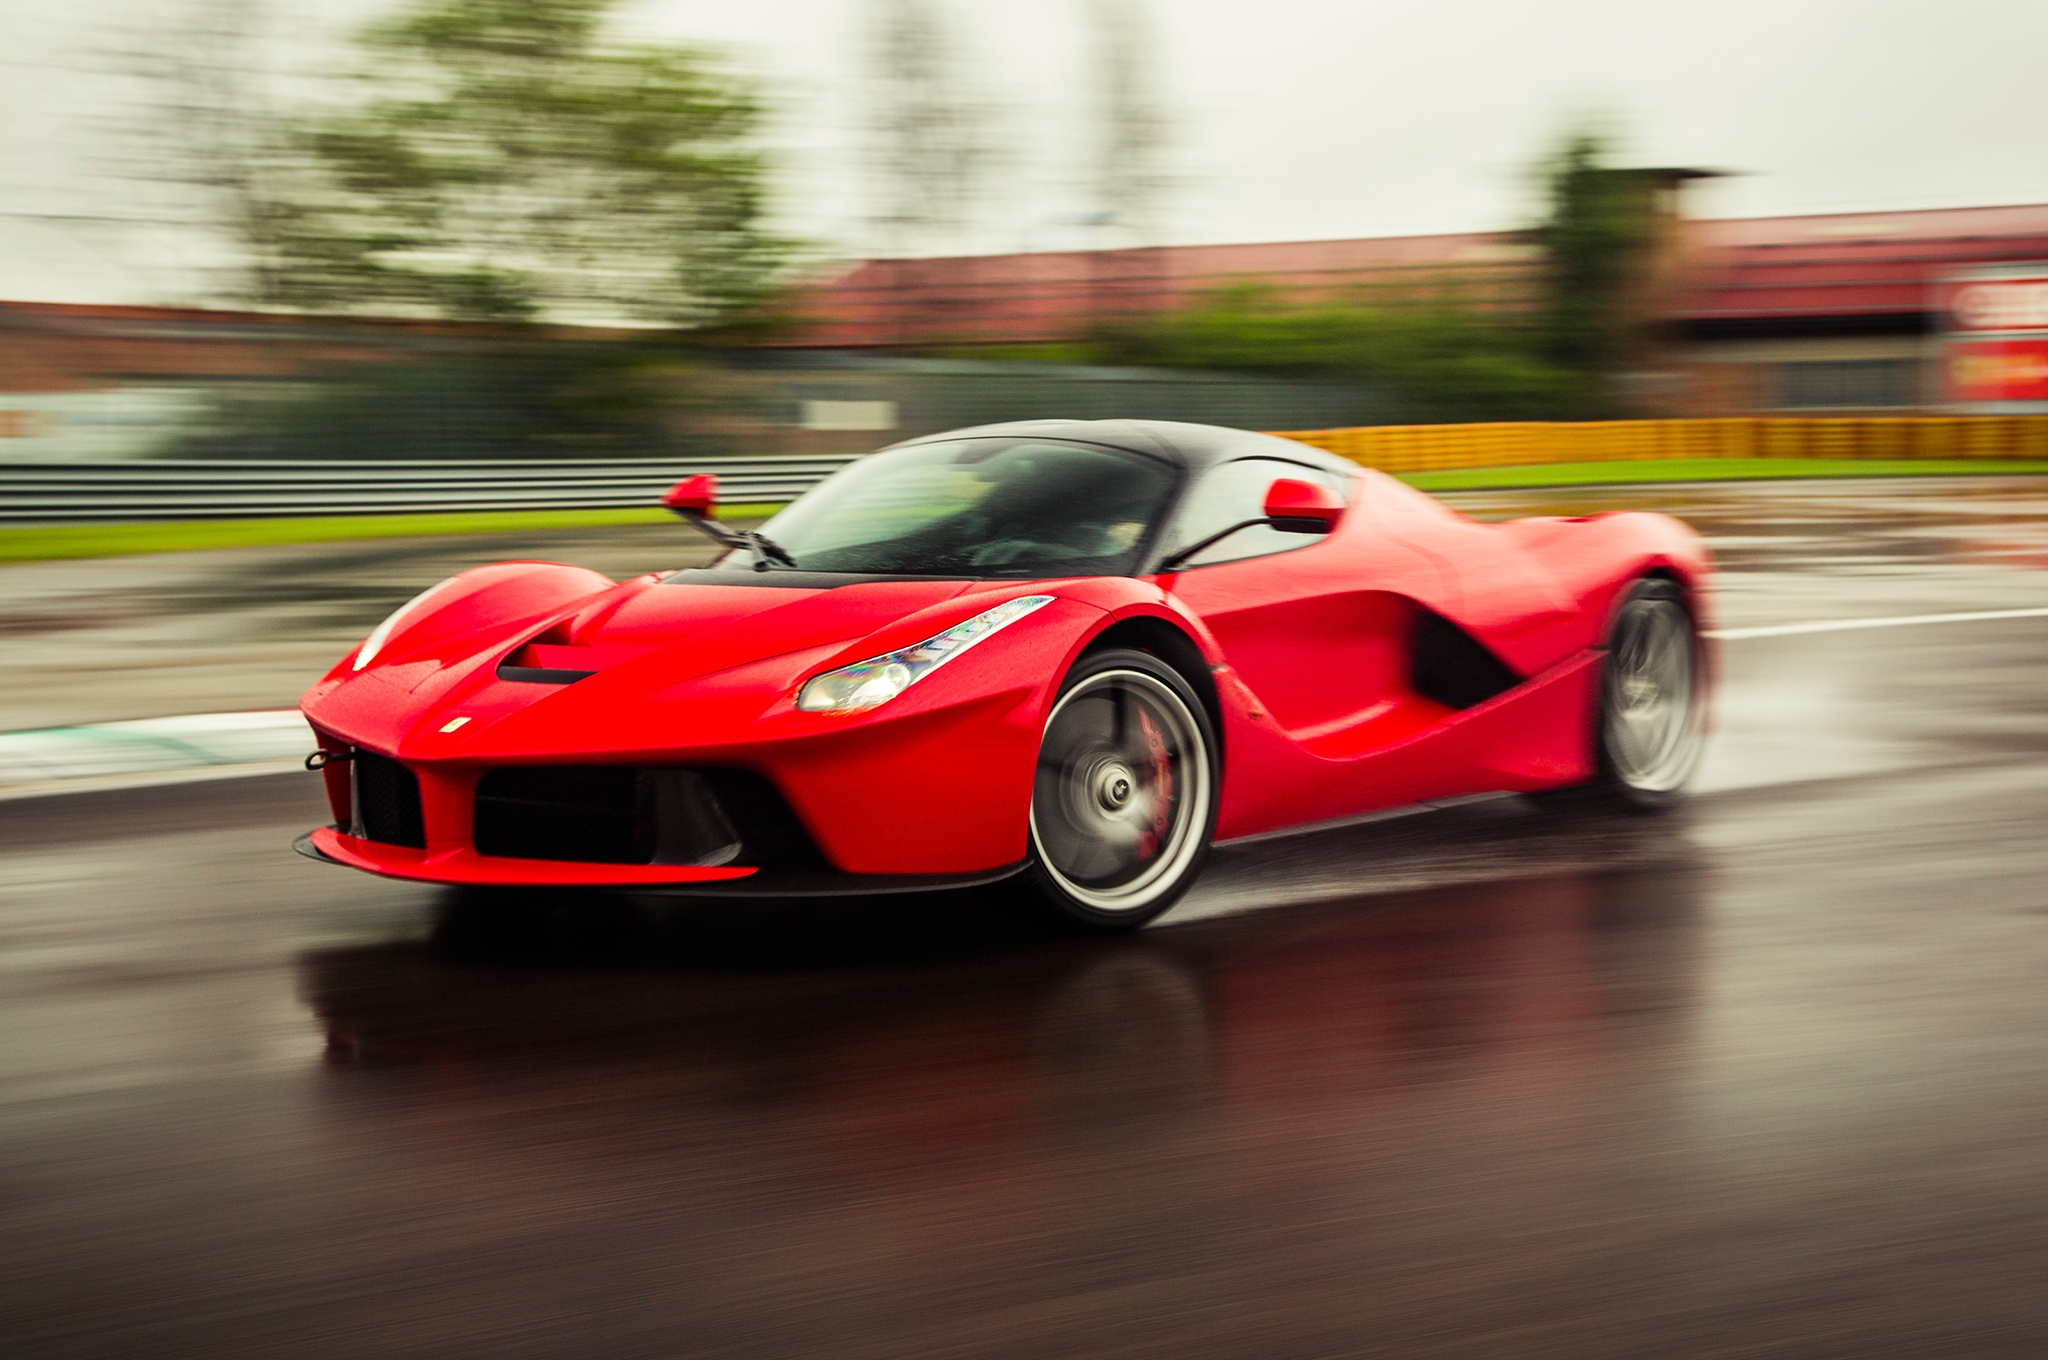 Ferrari LaFerrari Specs and Price - Exotic Car List